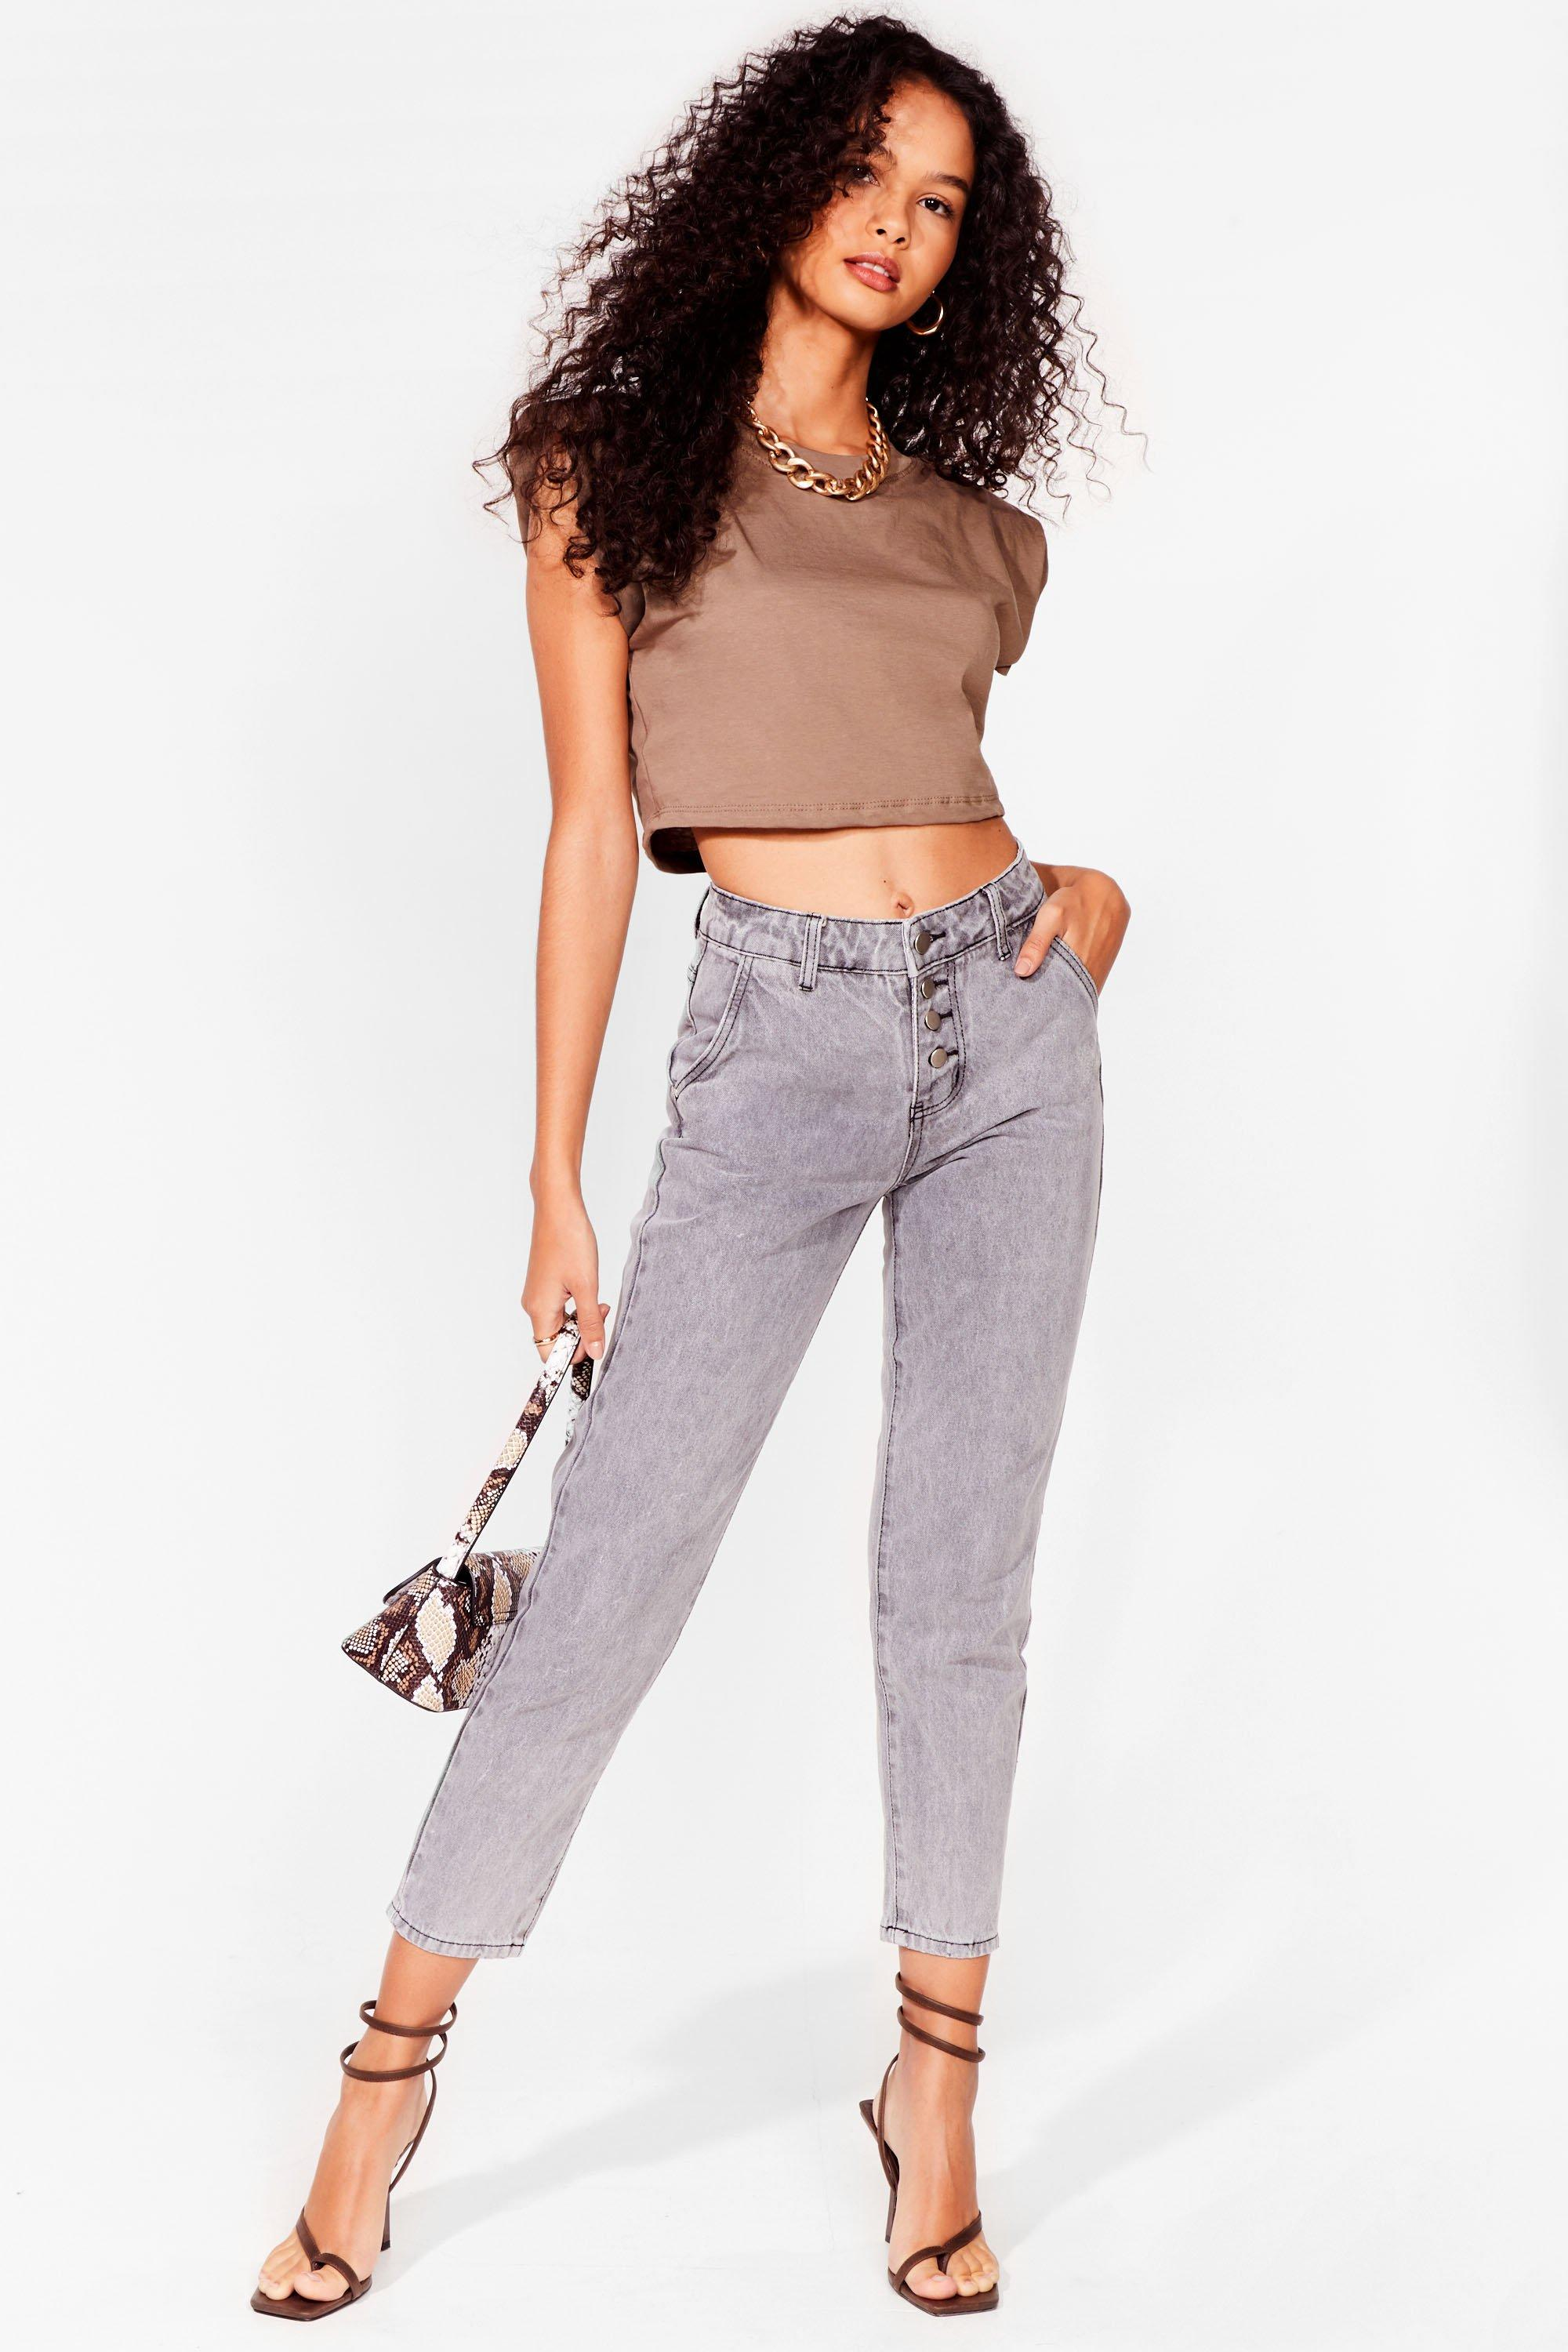 Image of Womens It Don't Jean a Thing High-Waisted Mom Jeans - Grey